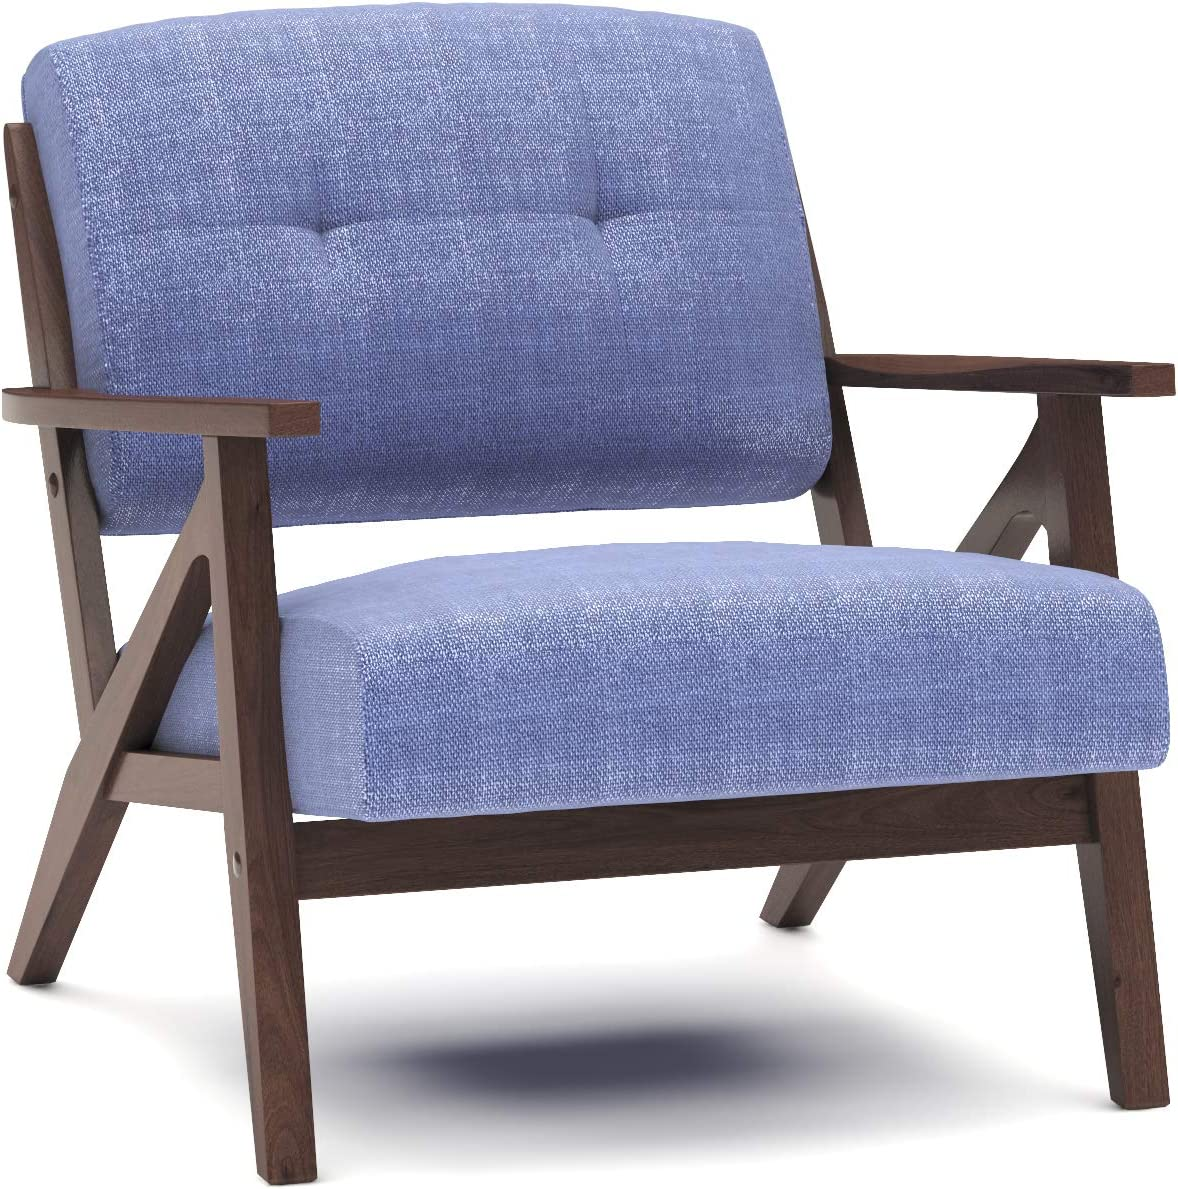 Colin Max 74% OFF Tufted Mid Century wholesale Wood Chair Accent